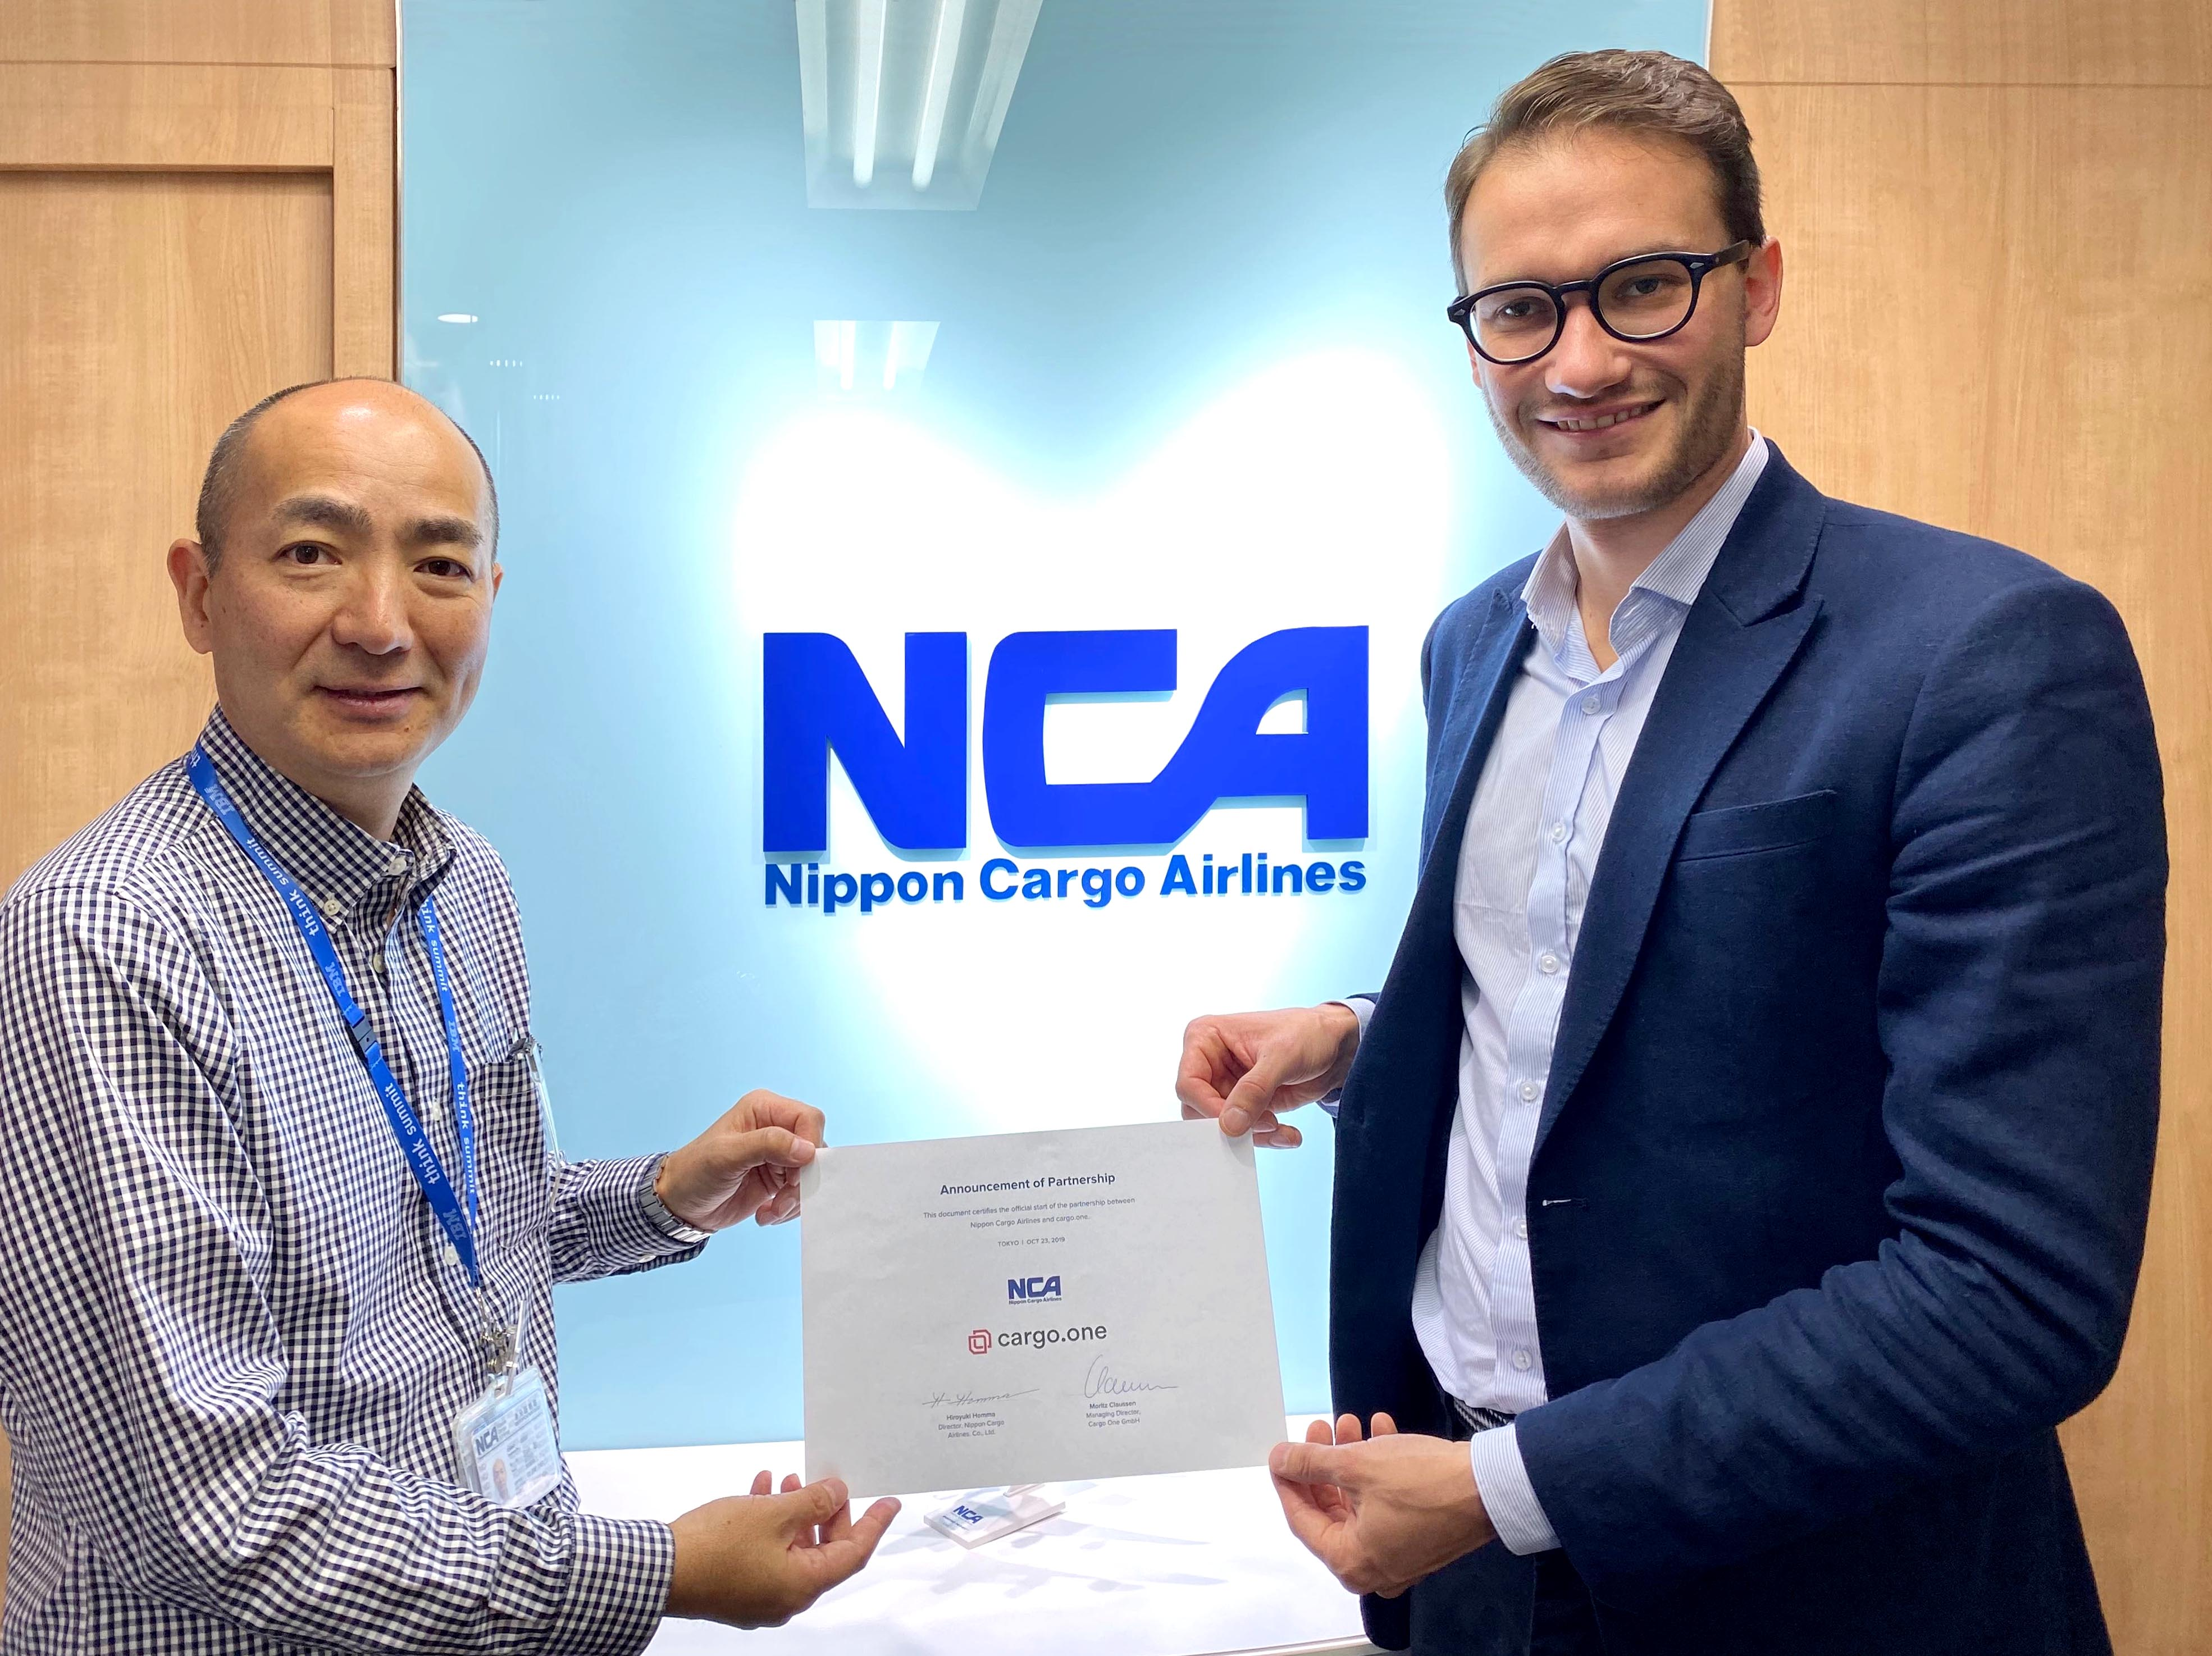 Nippon Cargo Airlines to host cargo capacity on cargo.one platform - Air Cargo News